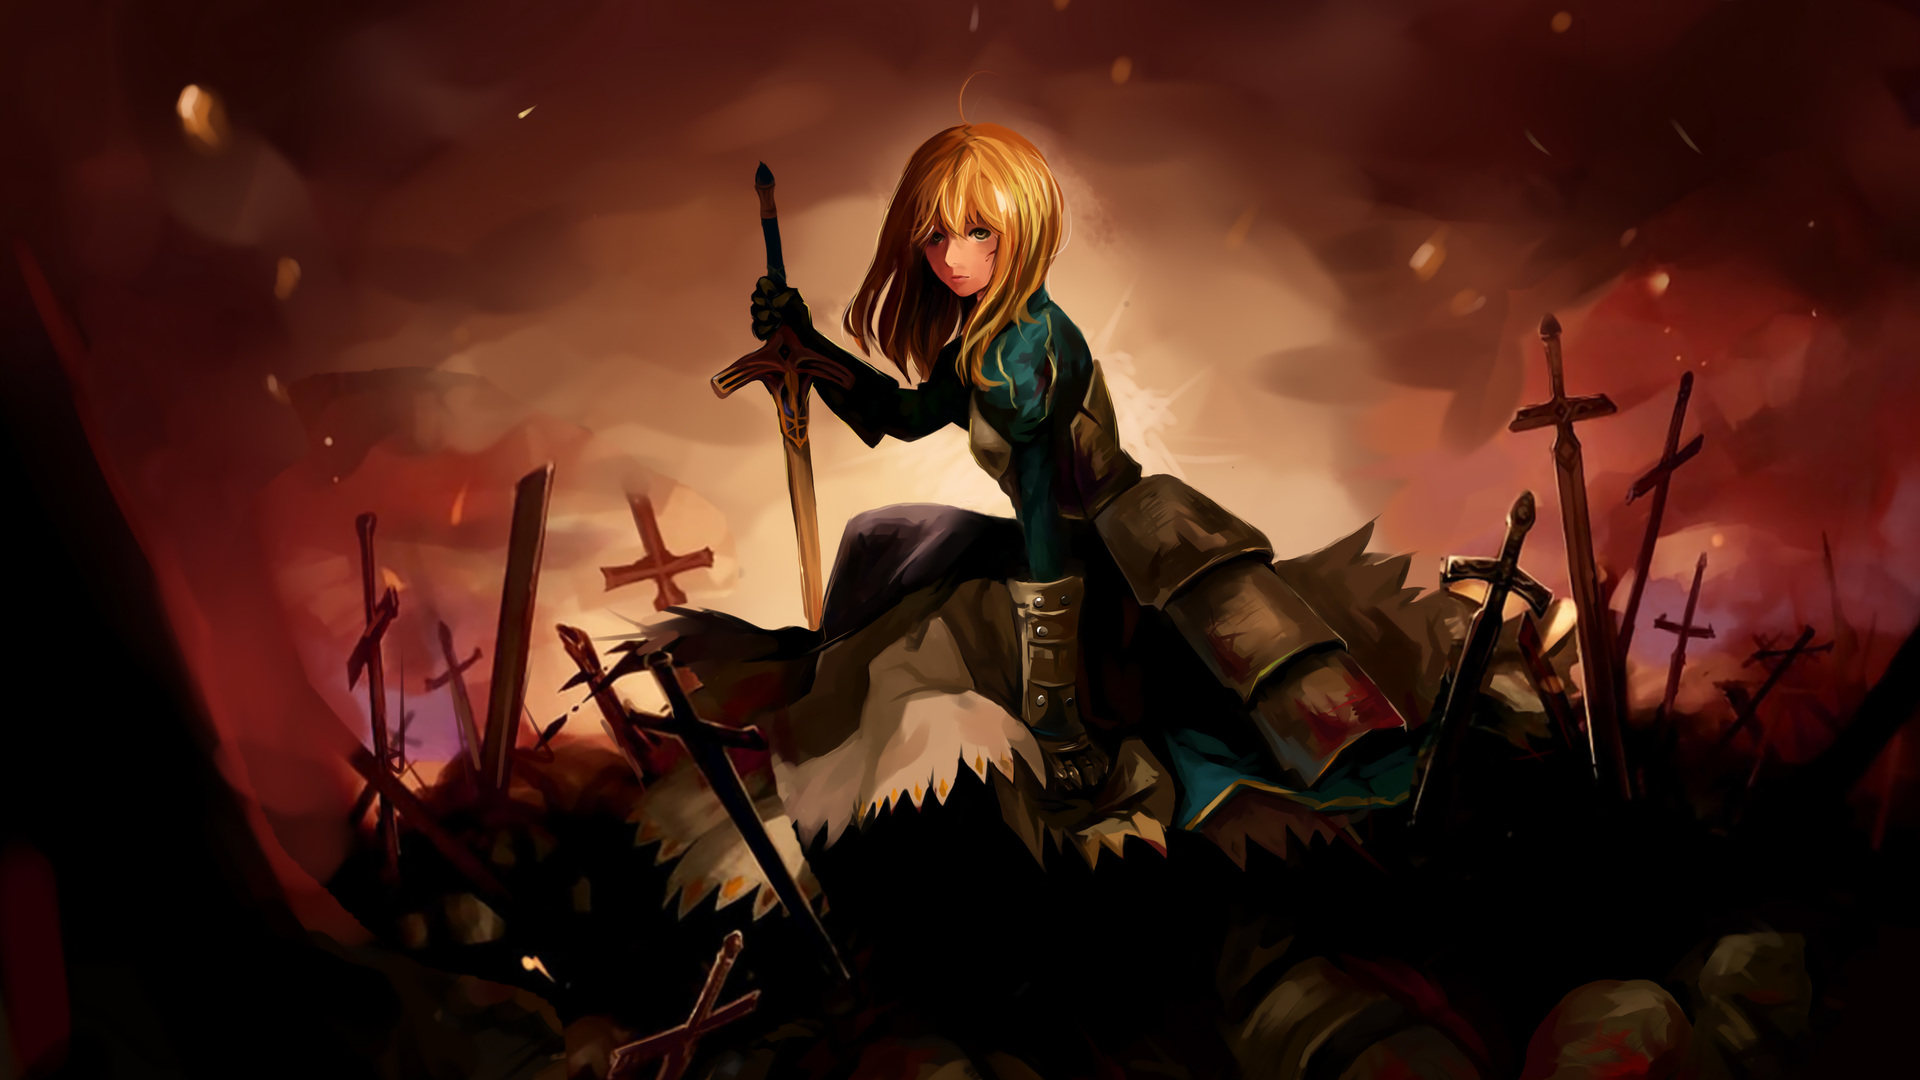 Saber Fate Stay Night Xt Fate Stay Night Saber 480400